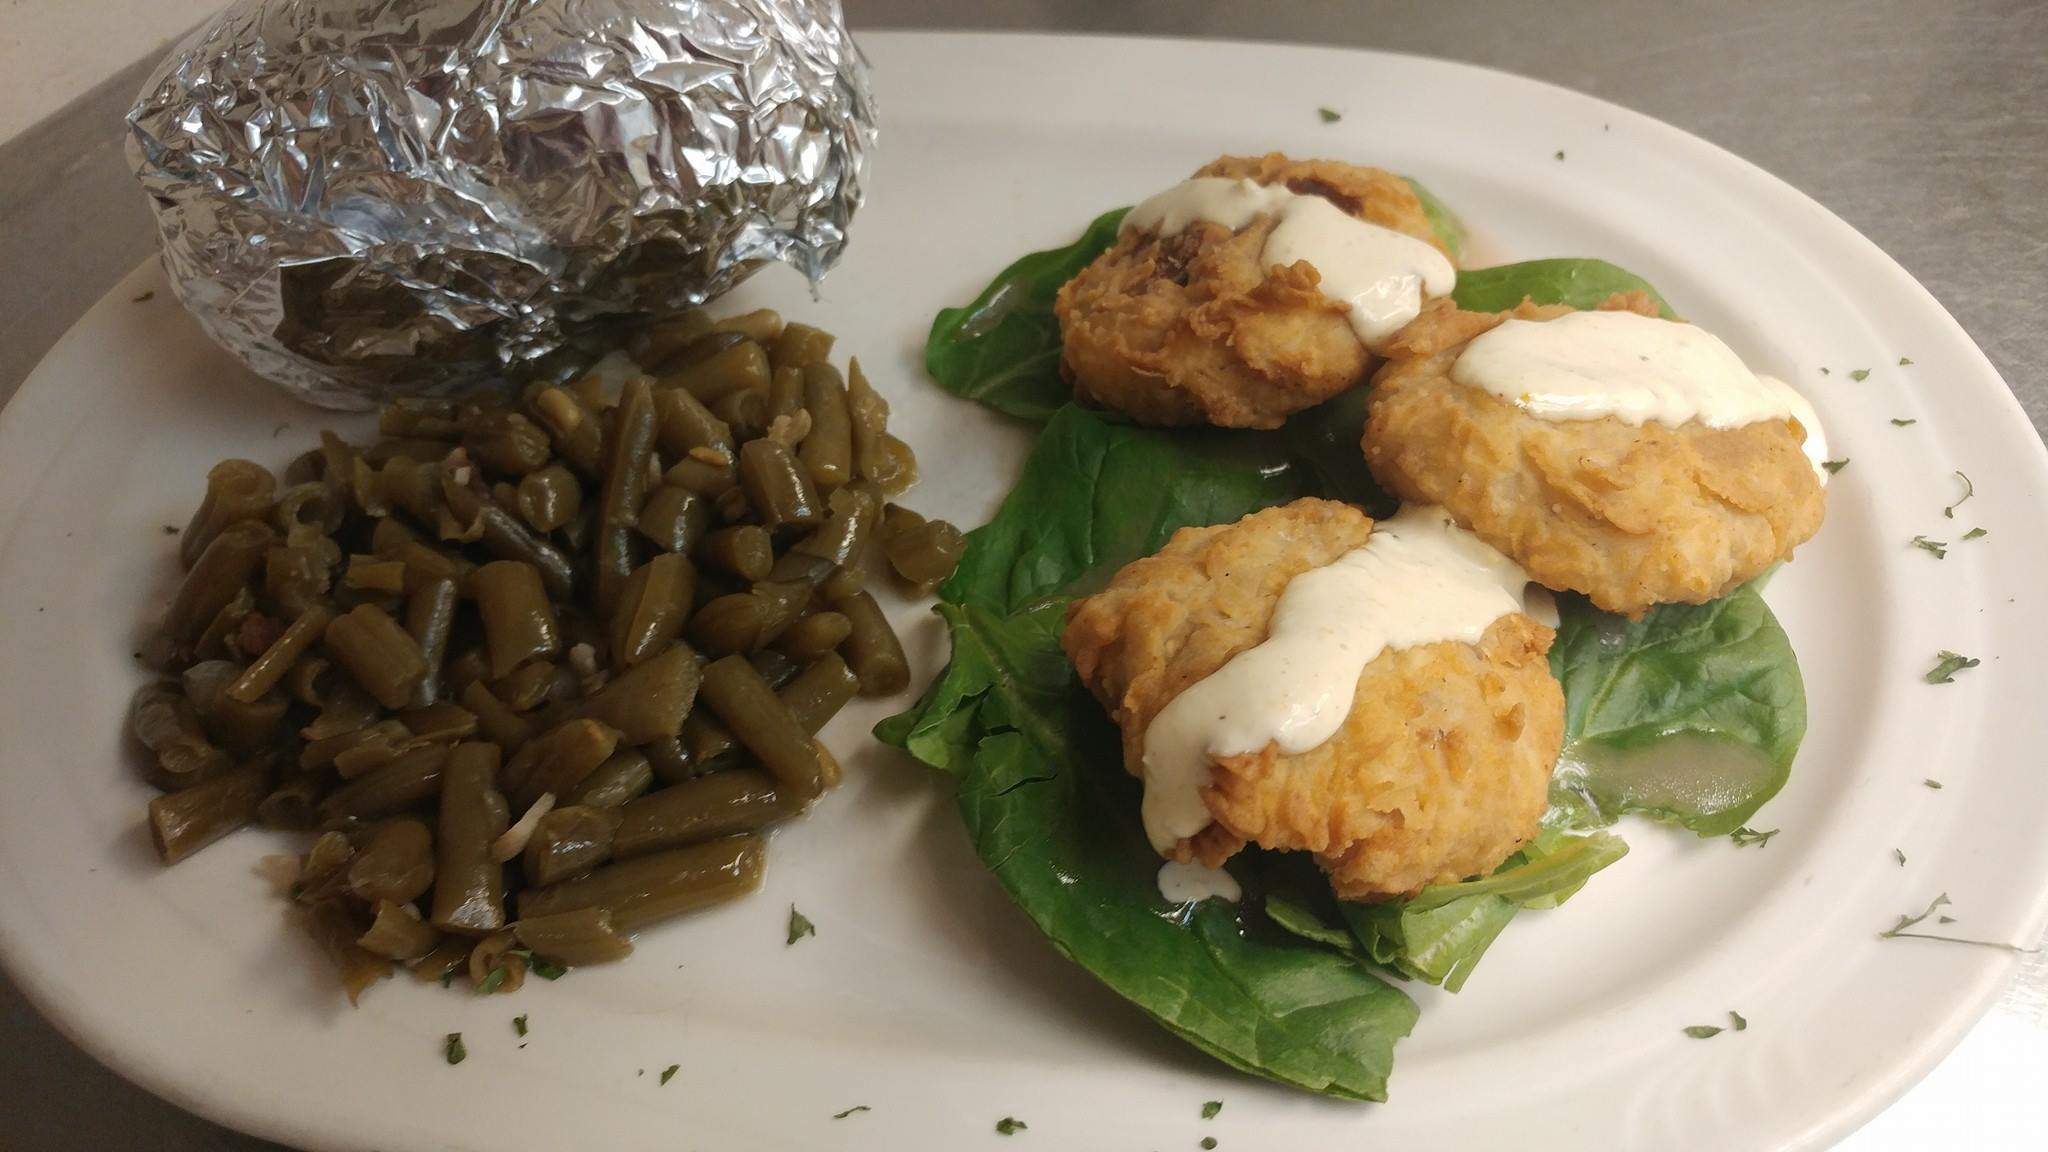 Fried portobello mushrooms. Lightly breaded and served with creamy ranch dressing, side of green beans.